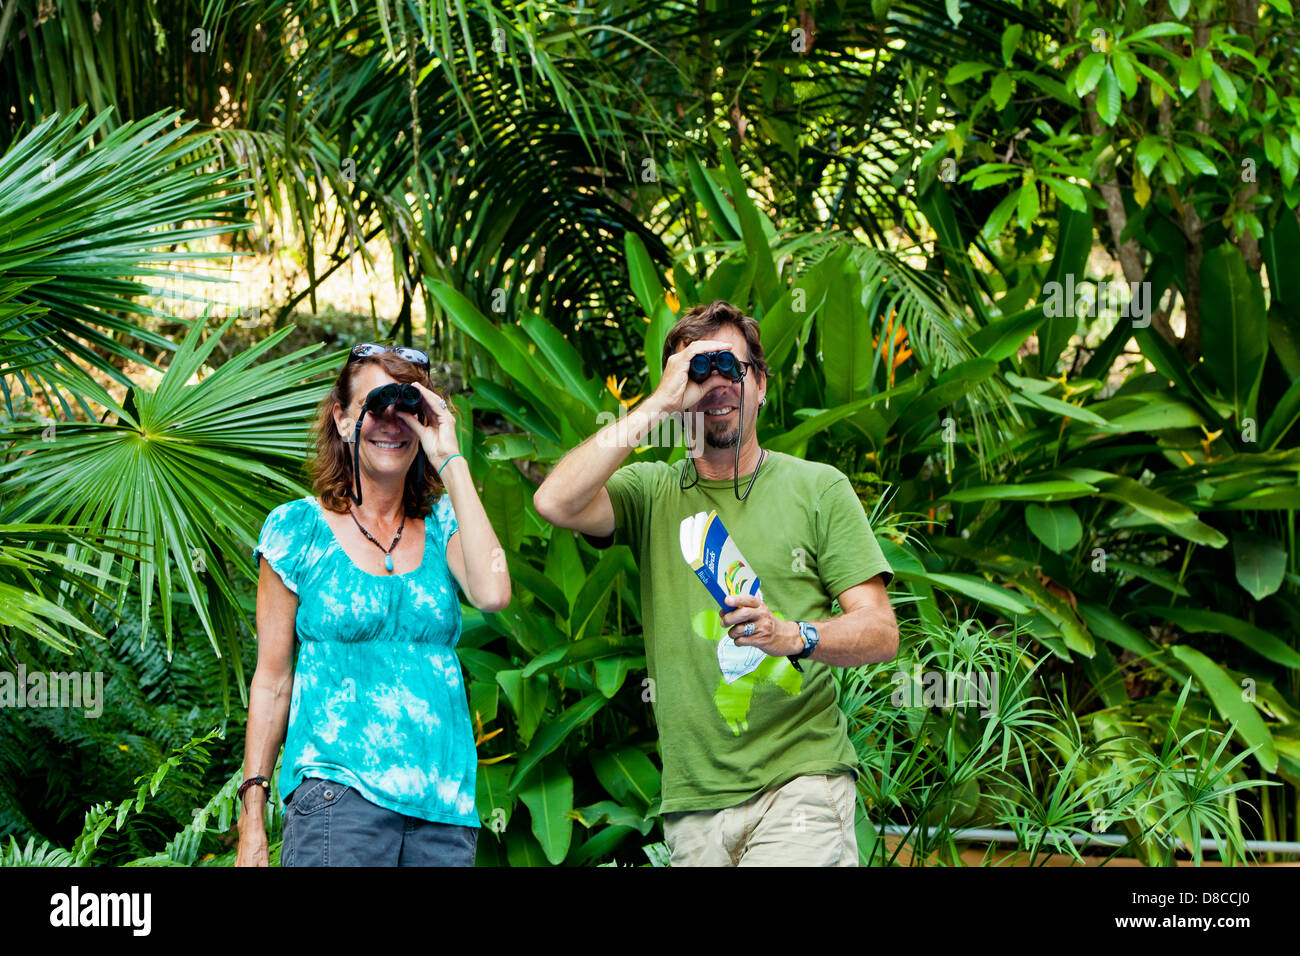 Man and woman bird watching in jungle Stock Photo